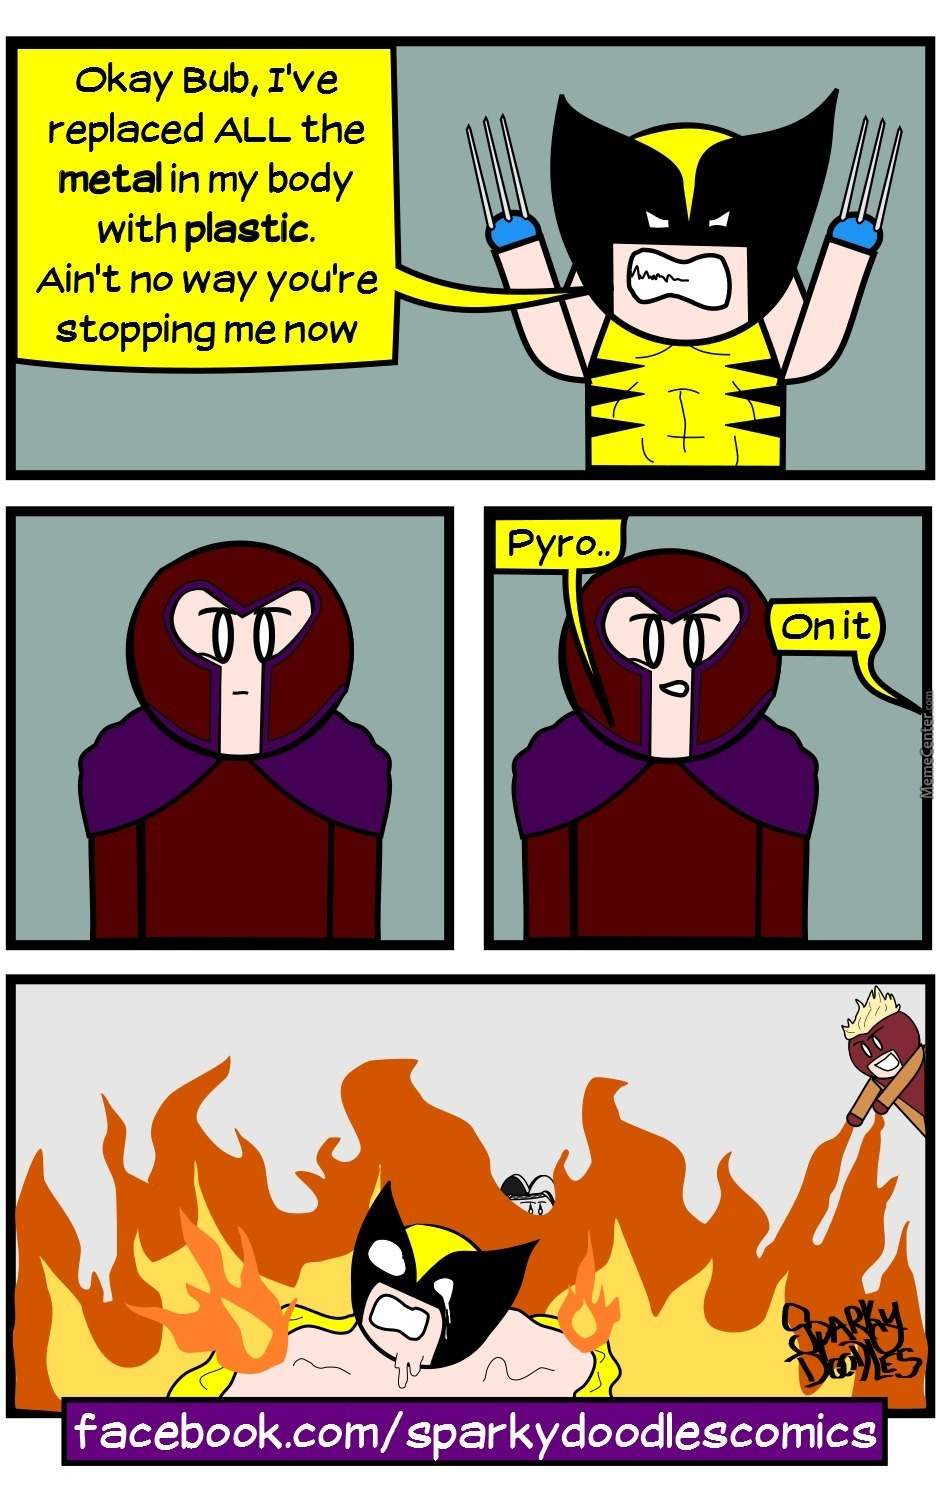 Sparky Doodles: Wolvie's Bad Day